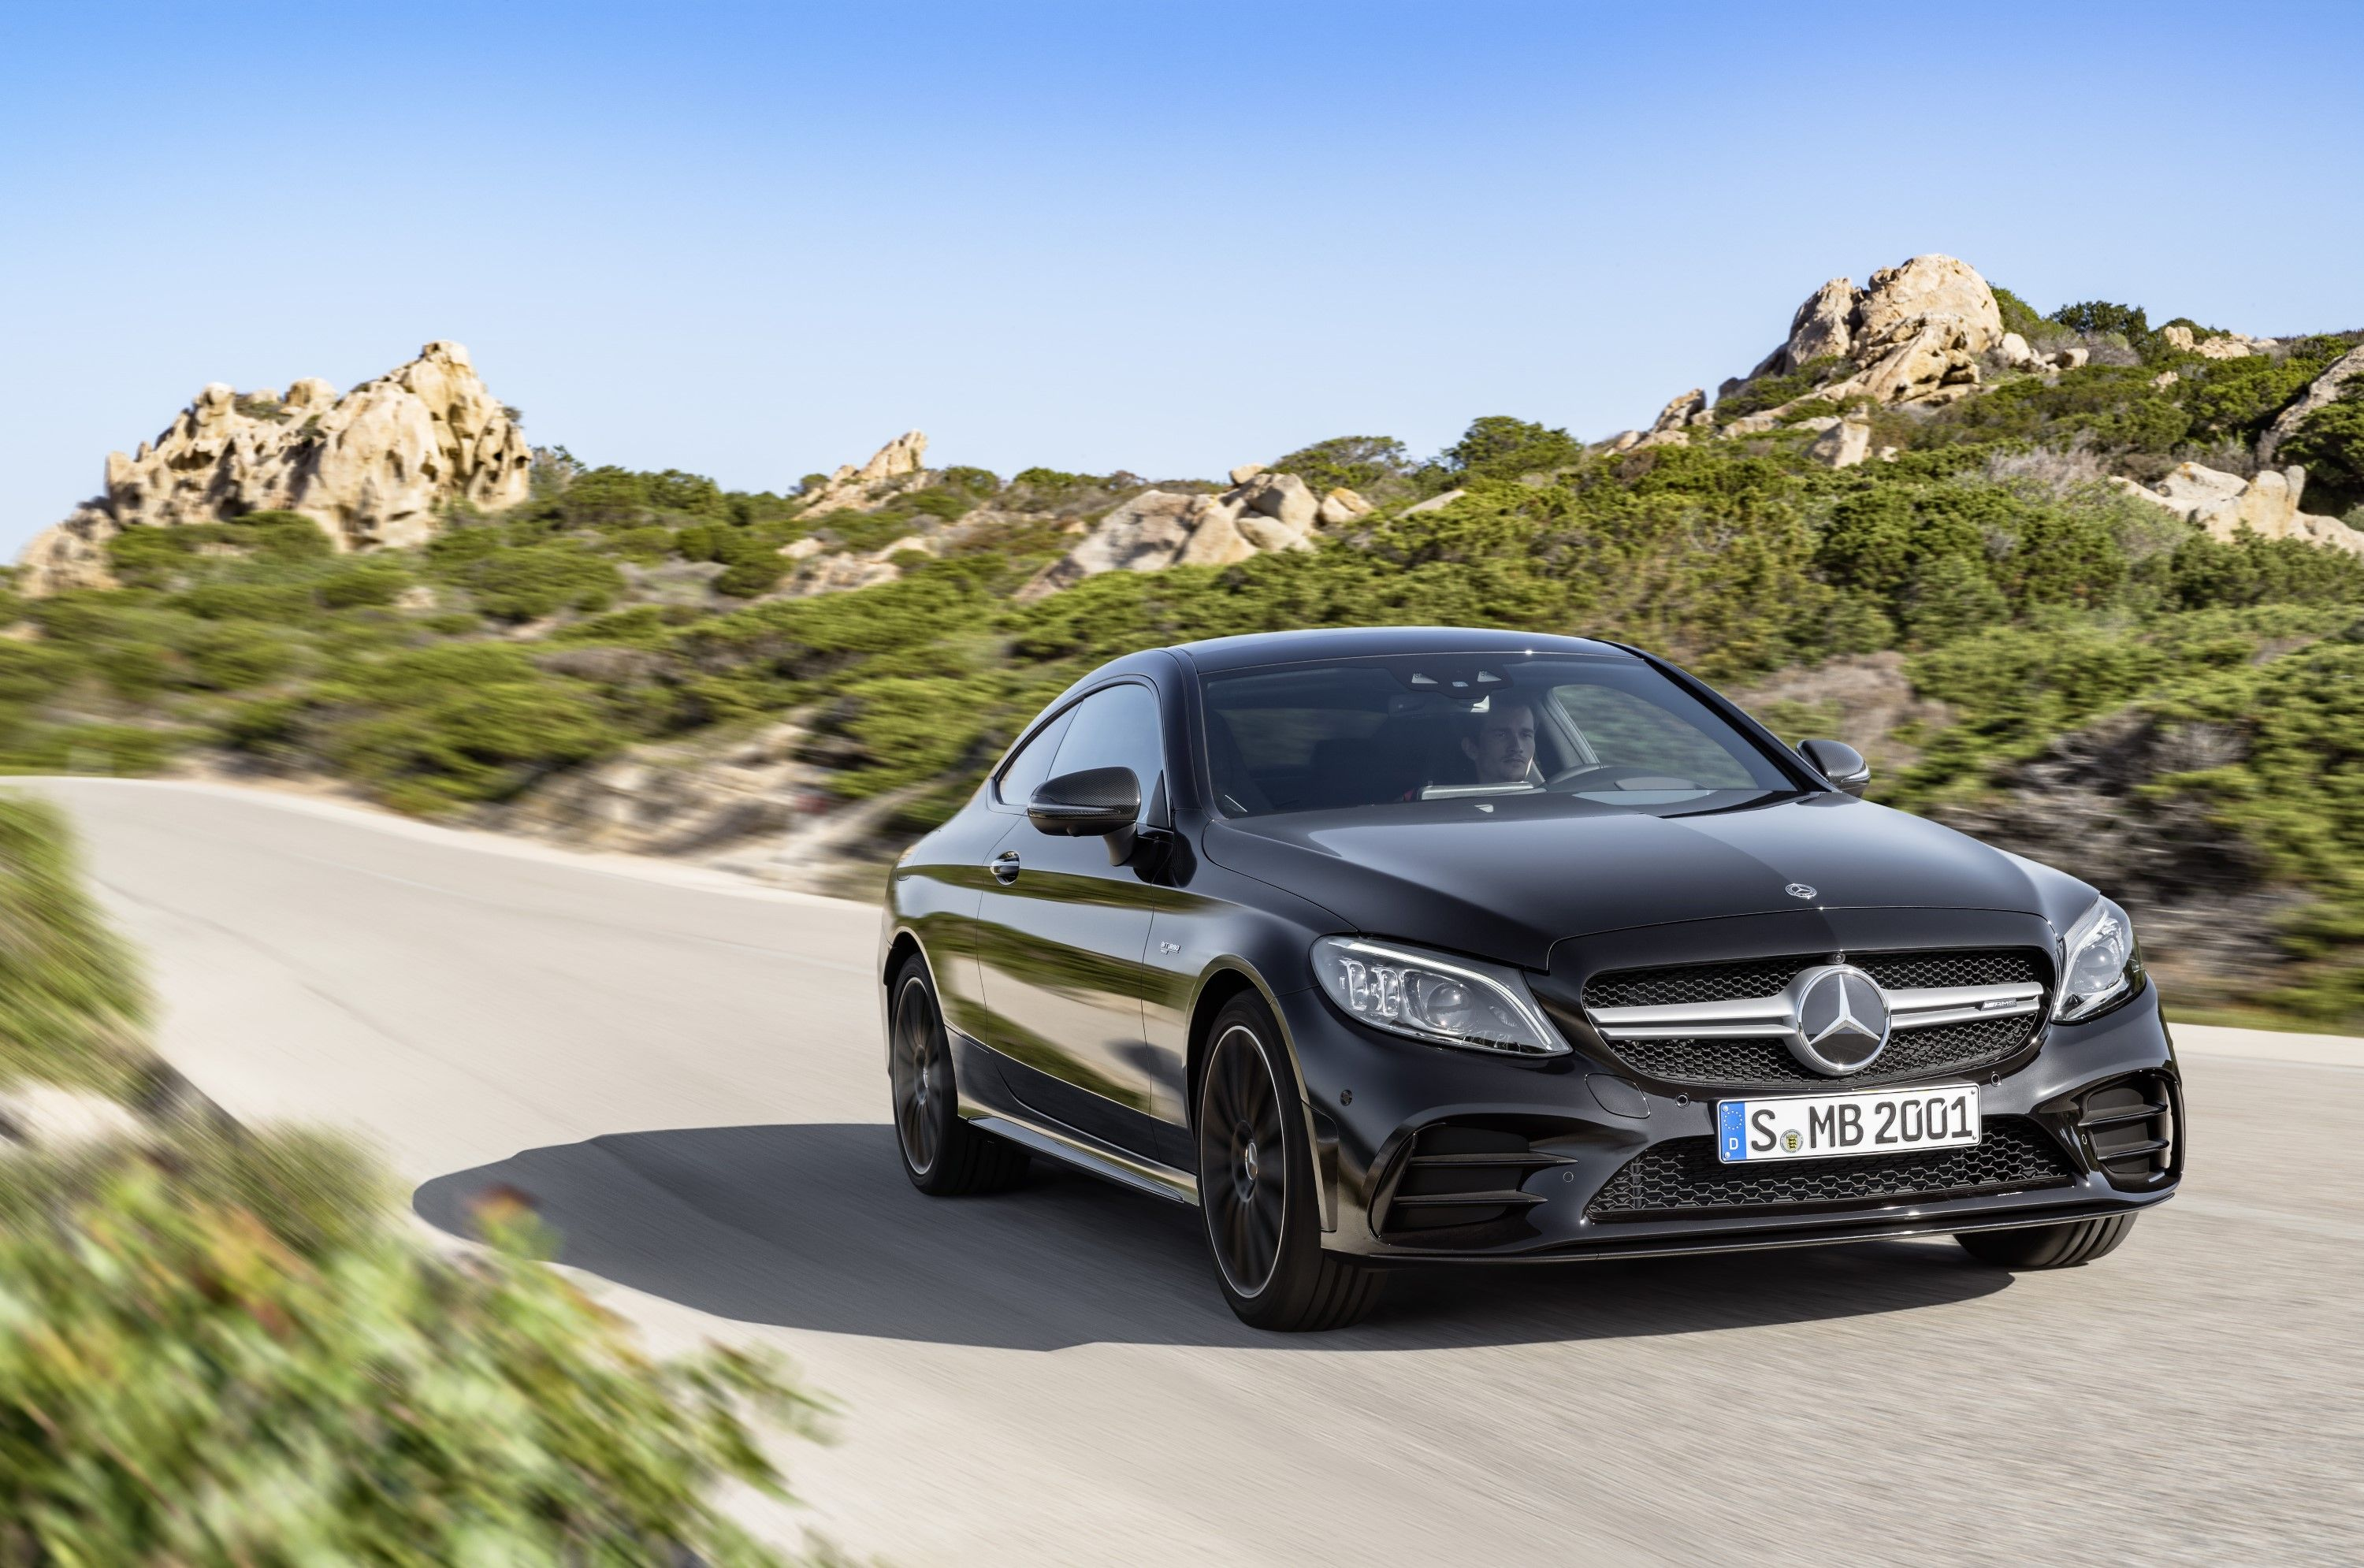 2019 Mercedes Benz C Class Coupe And Cab Unveiled With Images